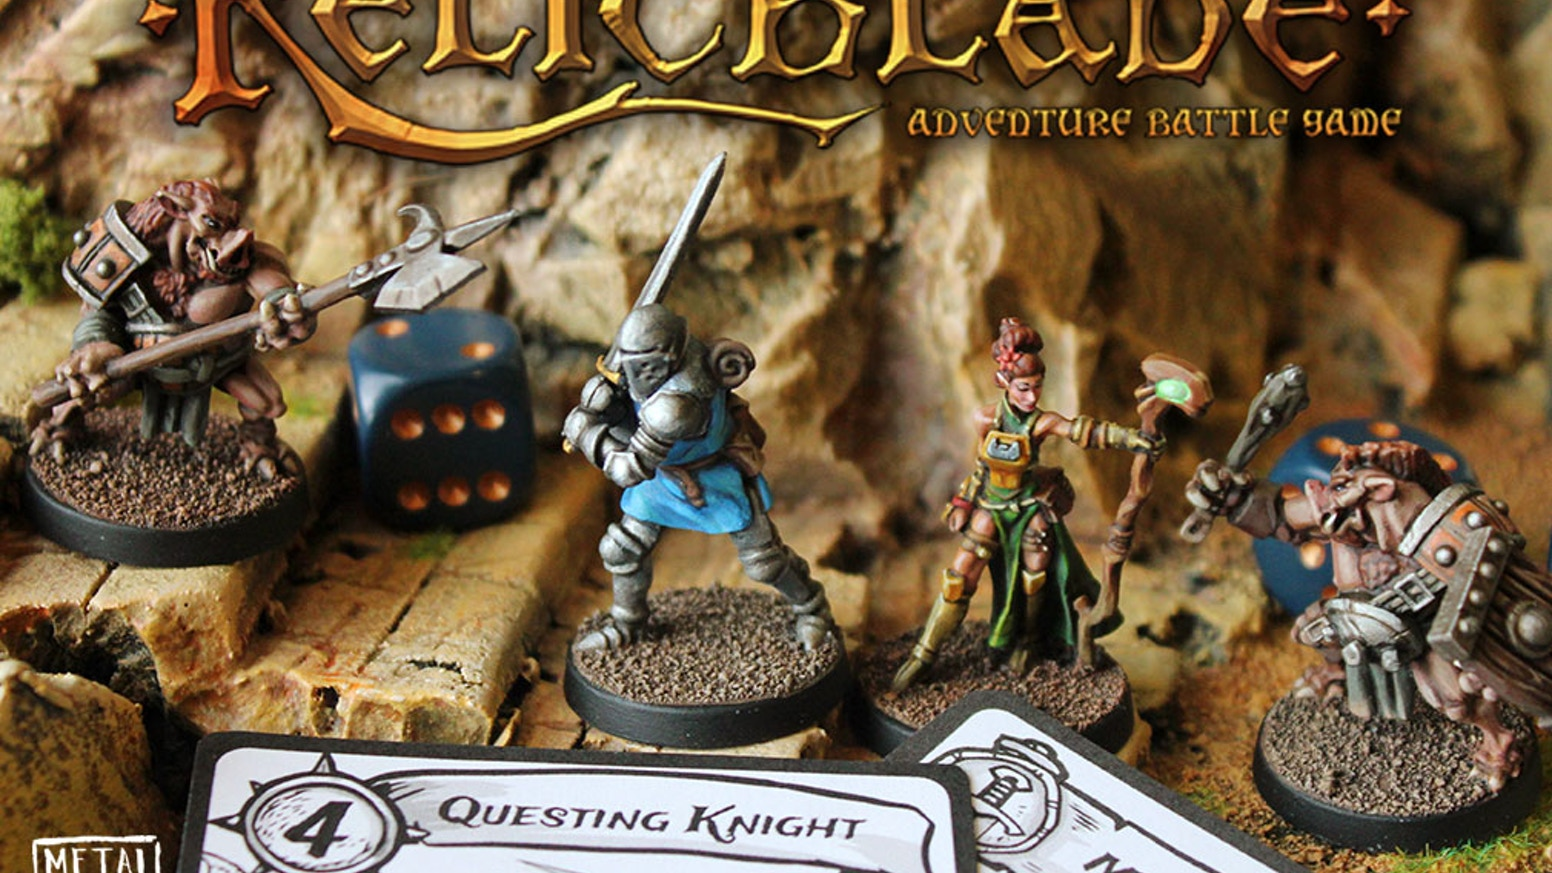 Players command a party of brave heroes or brutal monsters as they battle to claim magical relics of the ancient world. Relic Blade